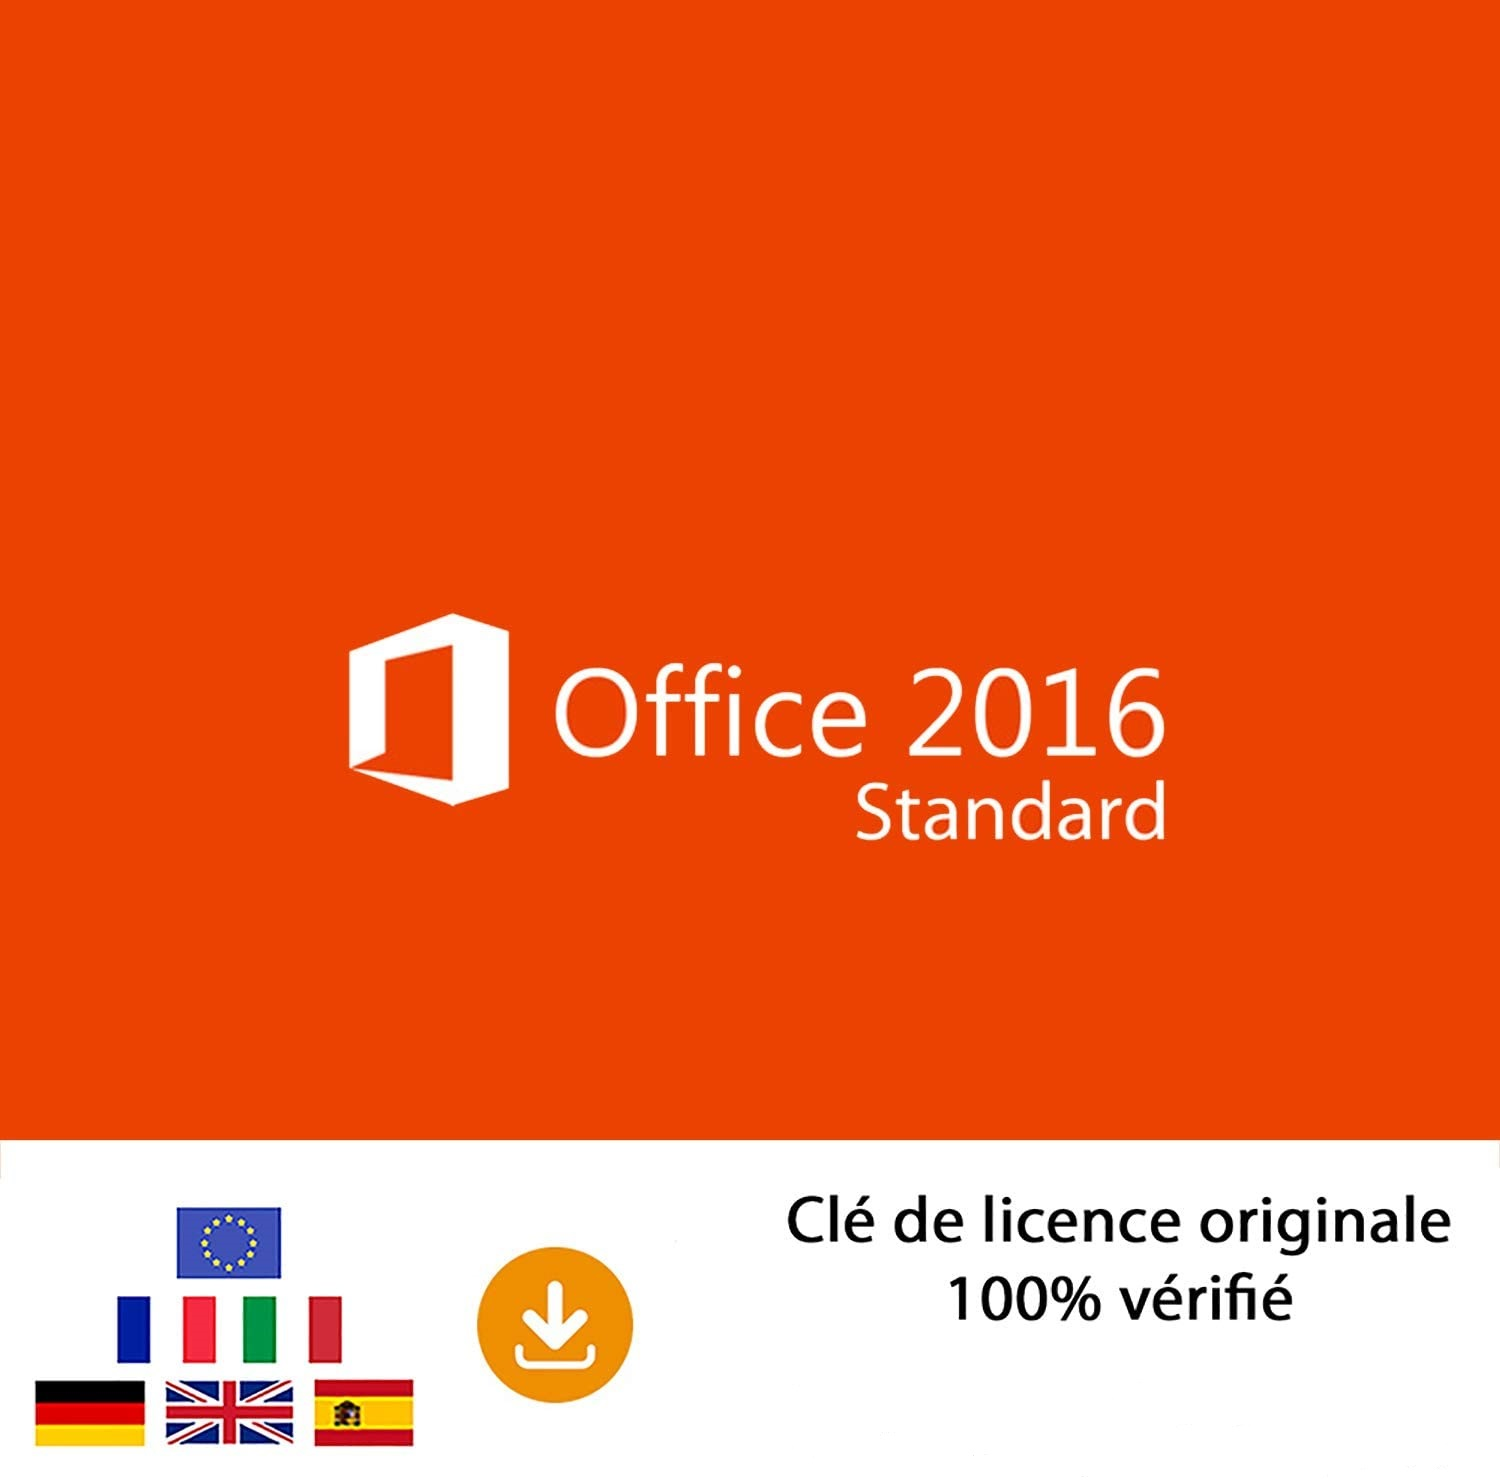 Microsoft Office 2016 Edition Standard